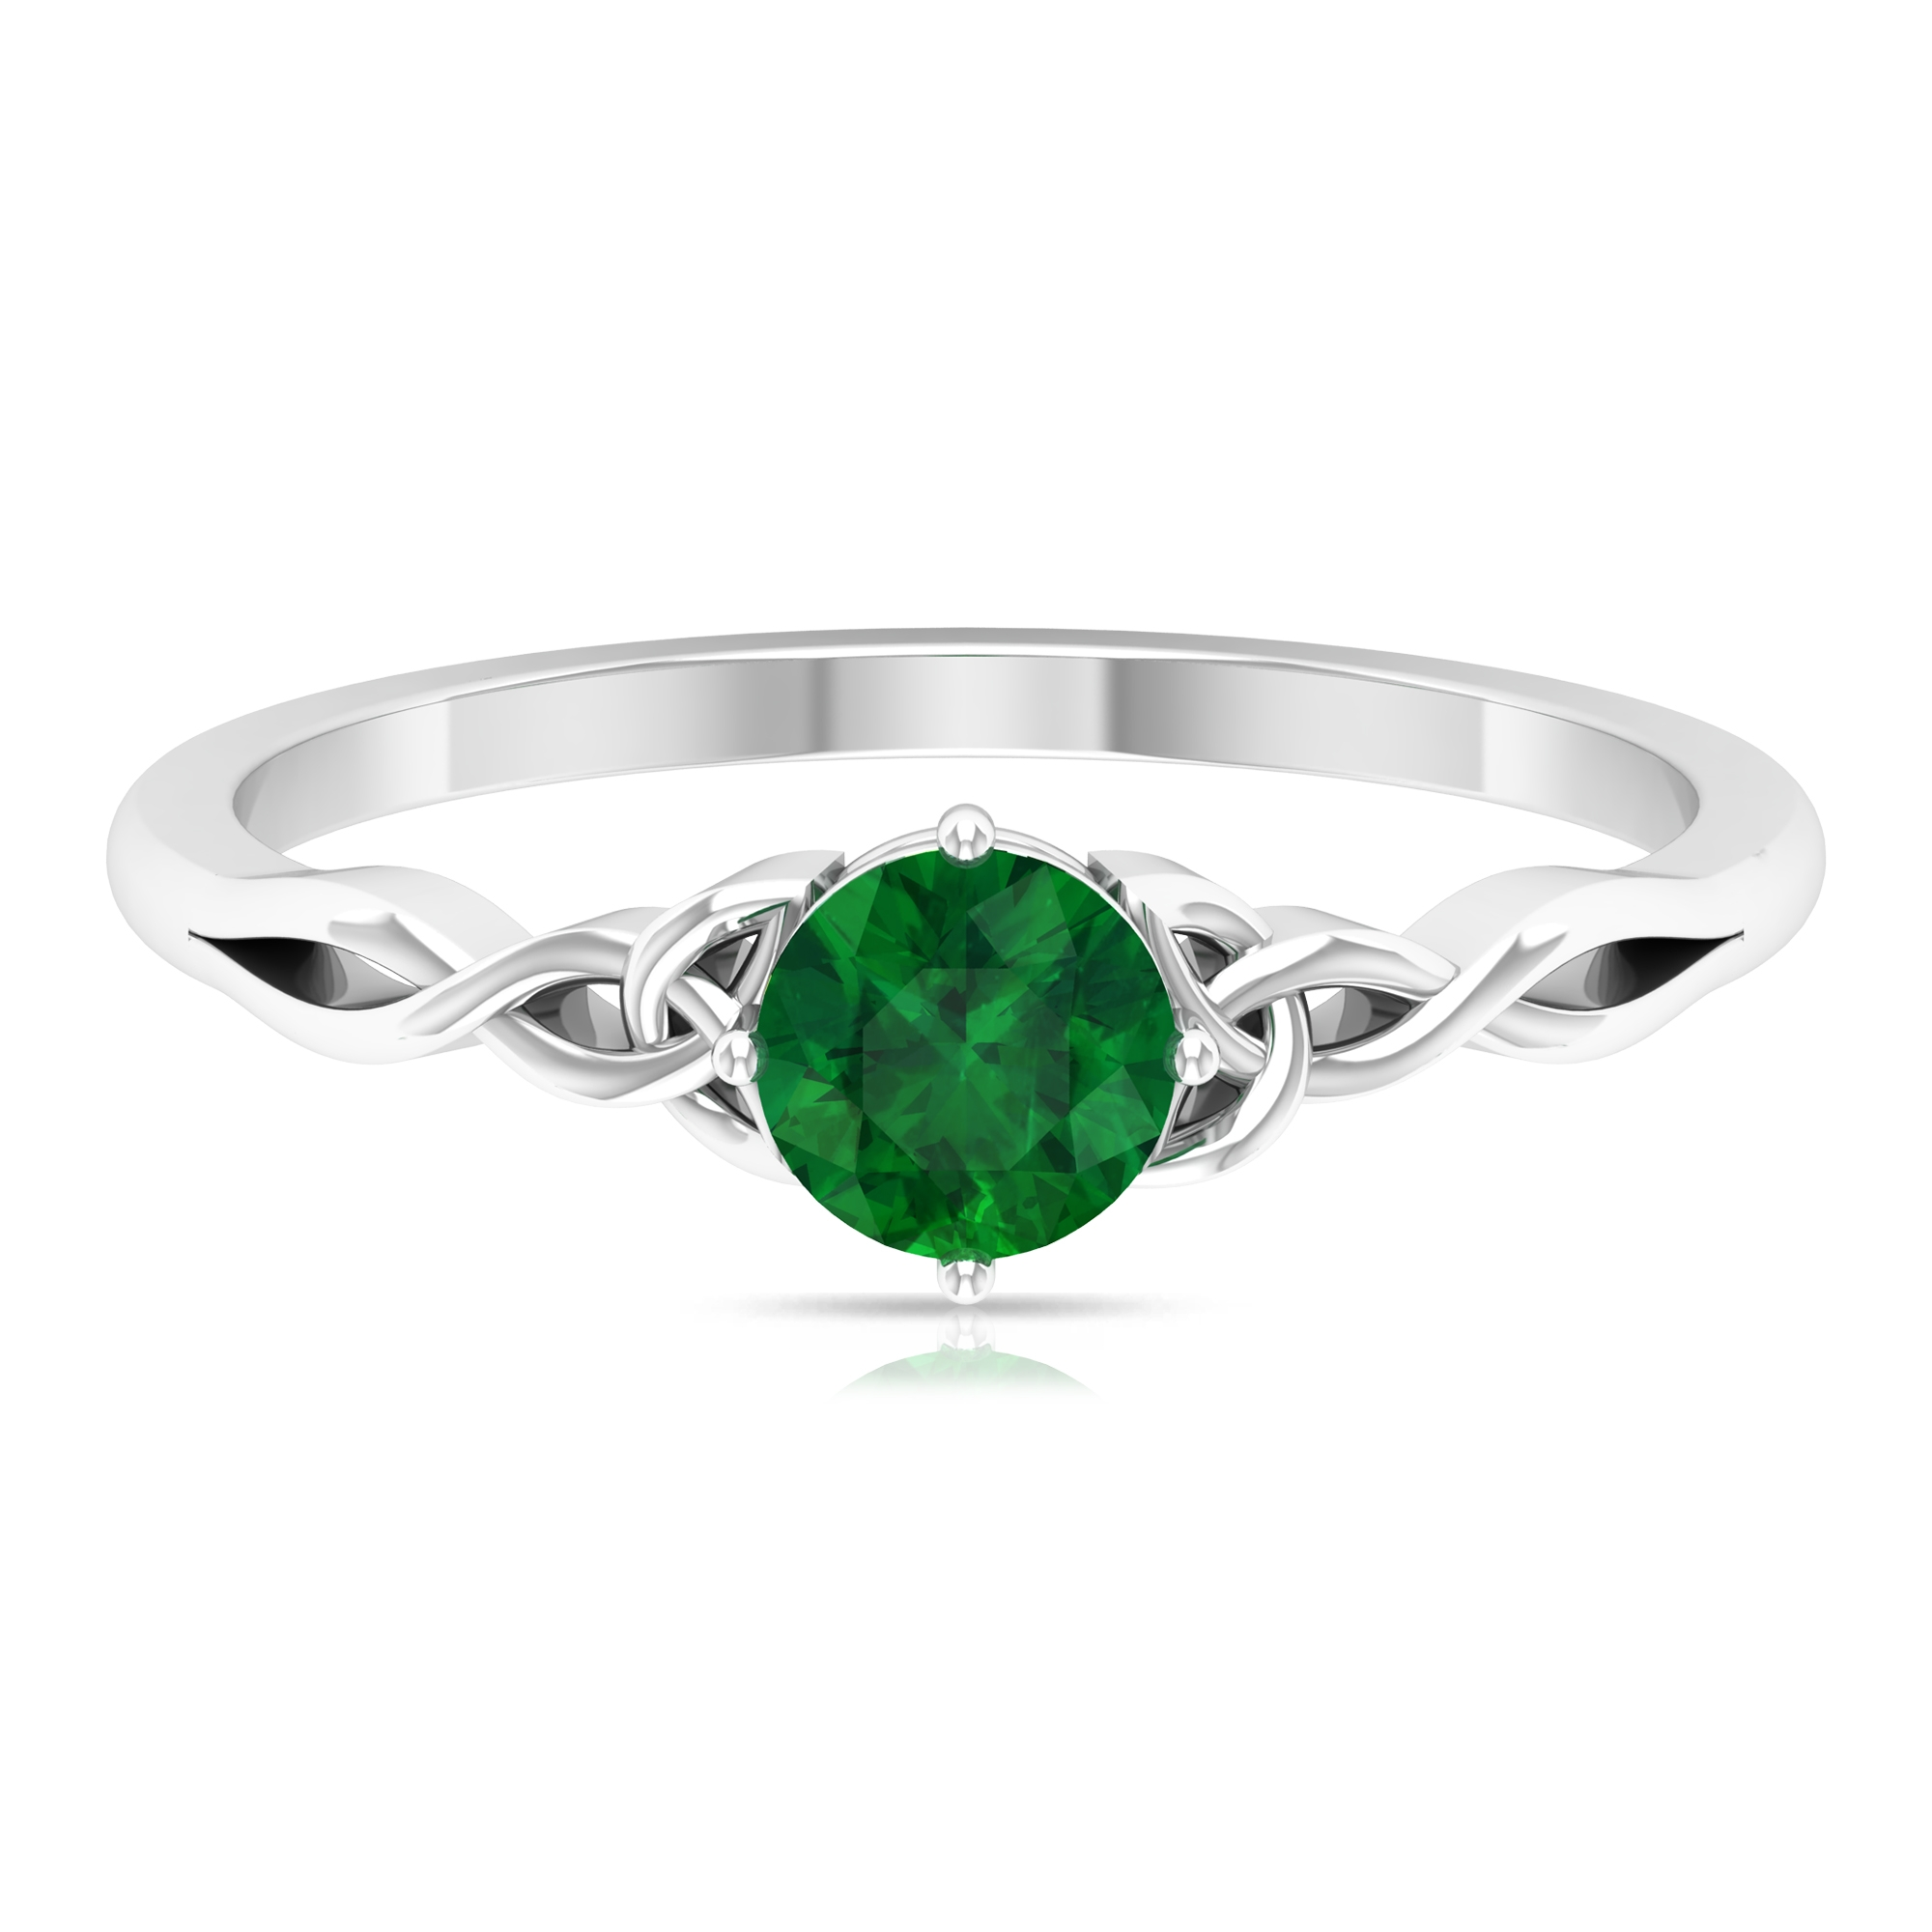 May Birthstone 5 MM Emerald Solitaire Ring in 4 Prong Diagonal Setting with Celtic Pattern